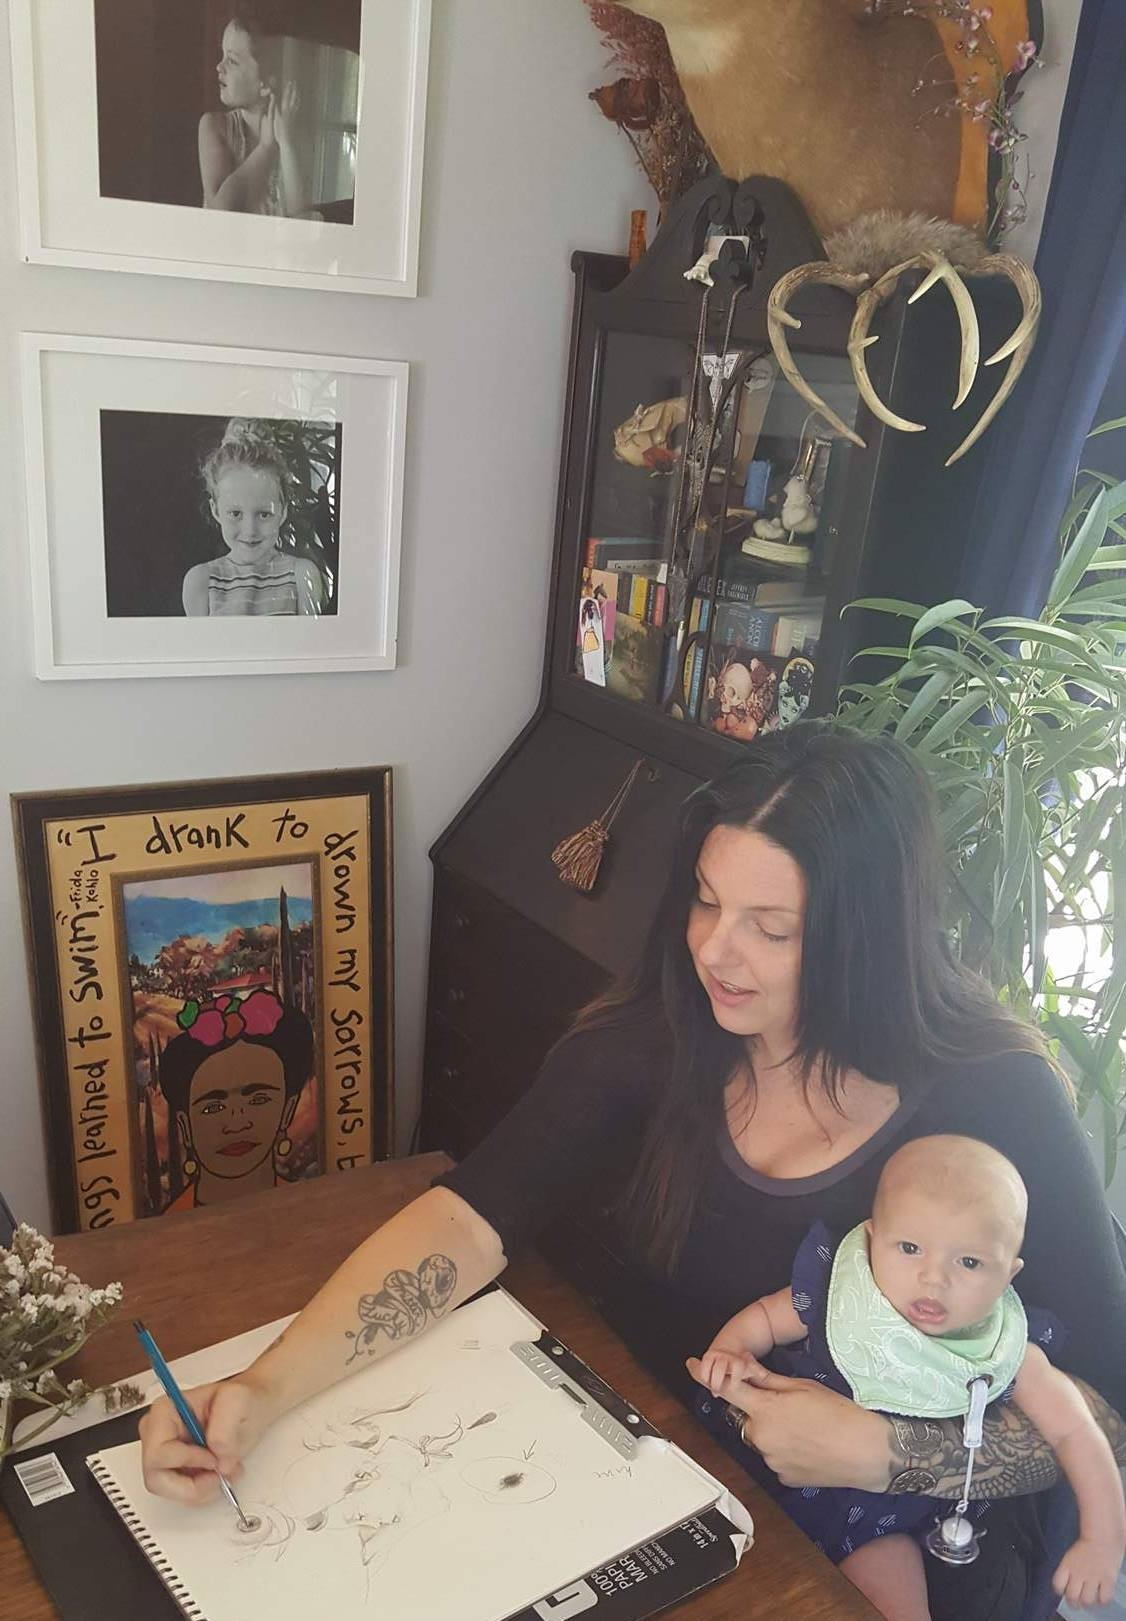 Kelley drawing a new piece with her youngest daughter in arm and two older daughters photos hung nearby on the wall.